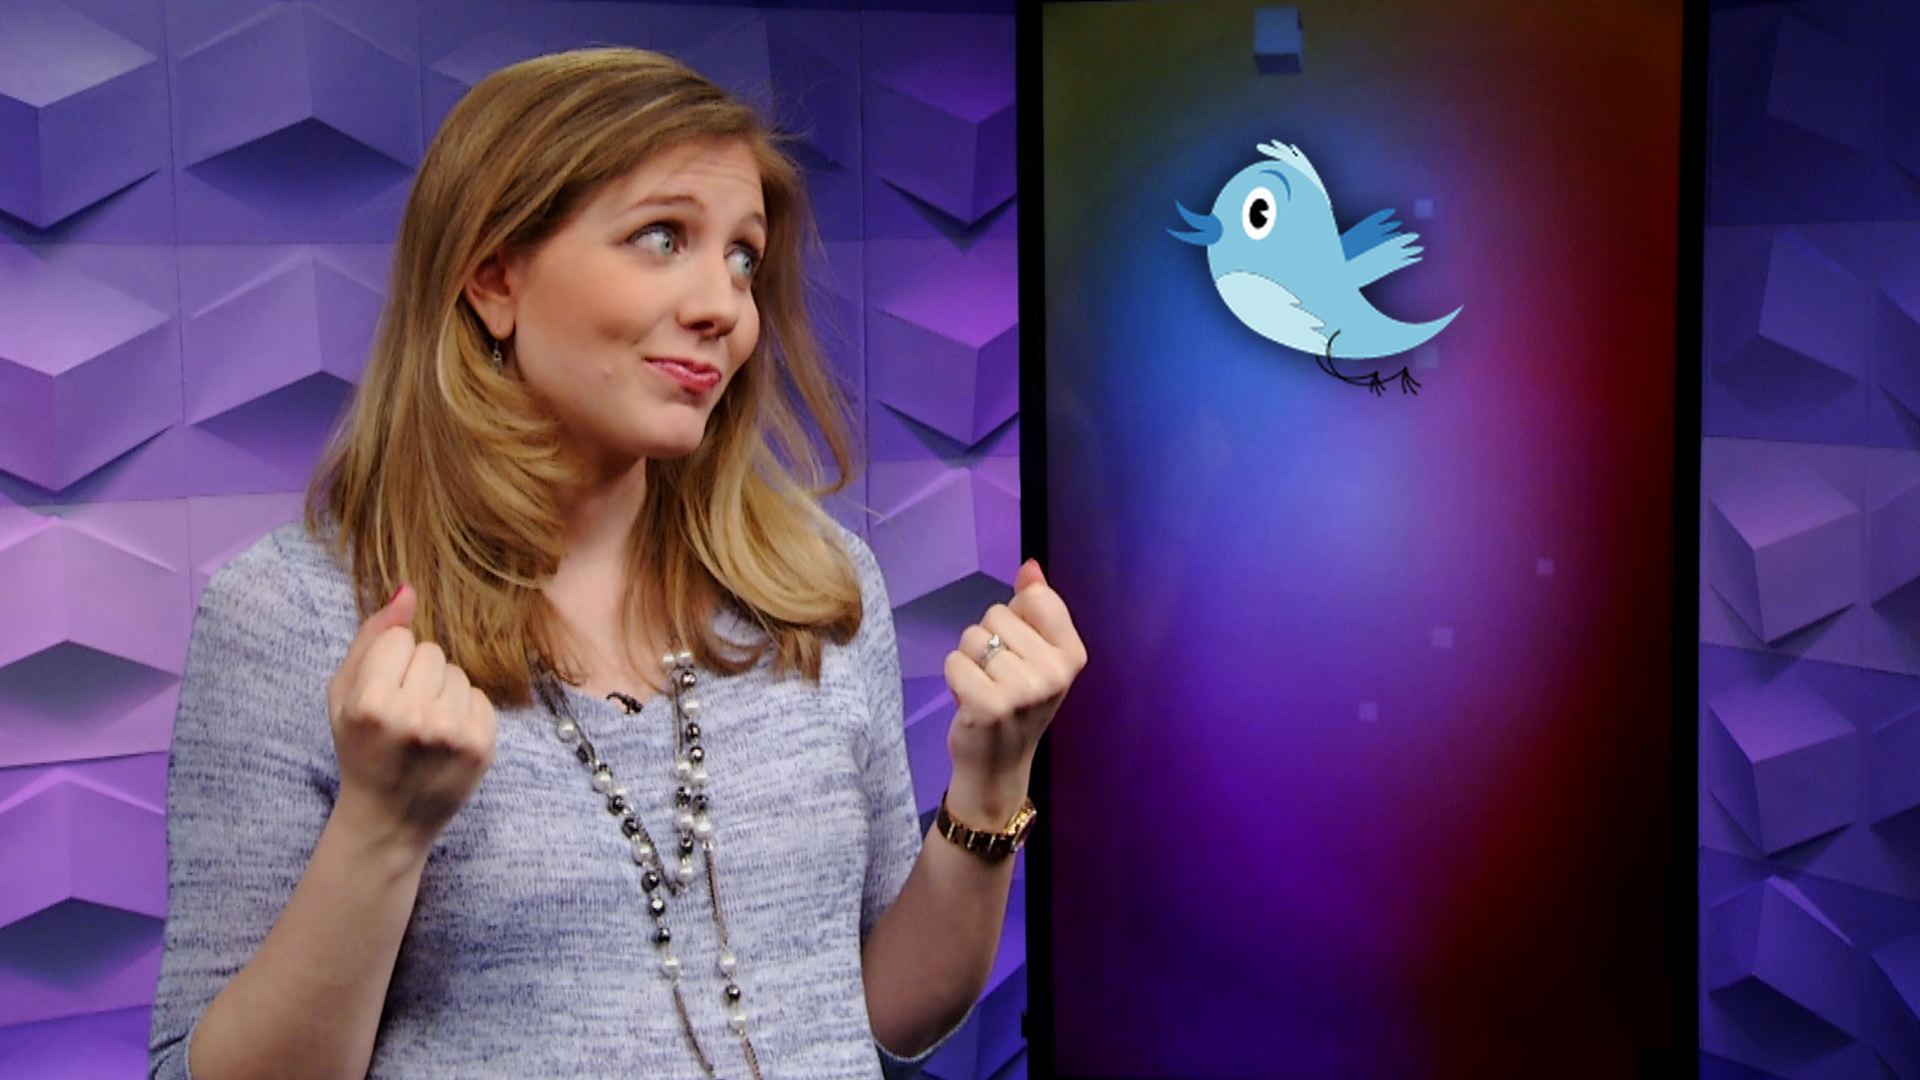 Video: Twitter now calls itself a news app, not a social network